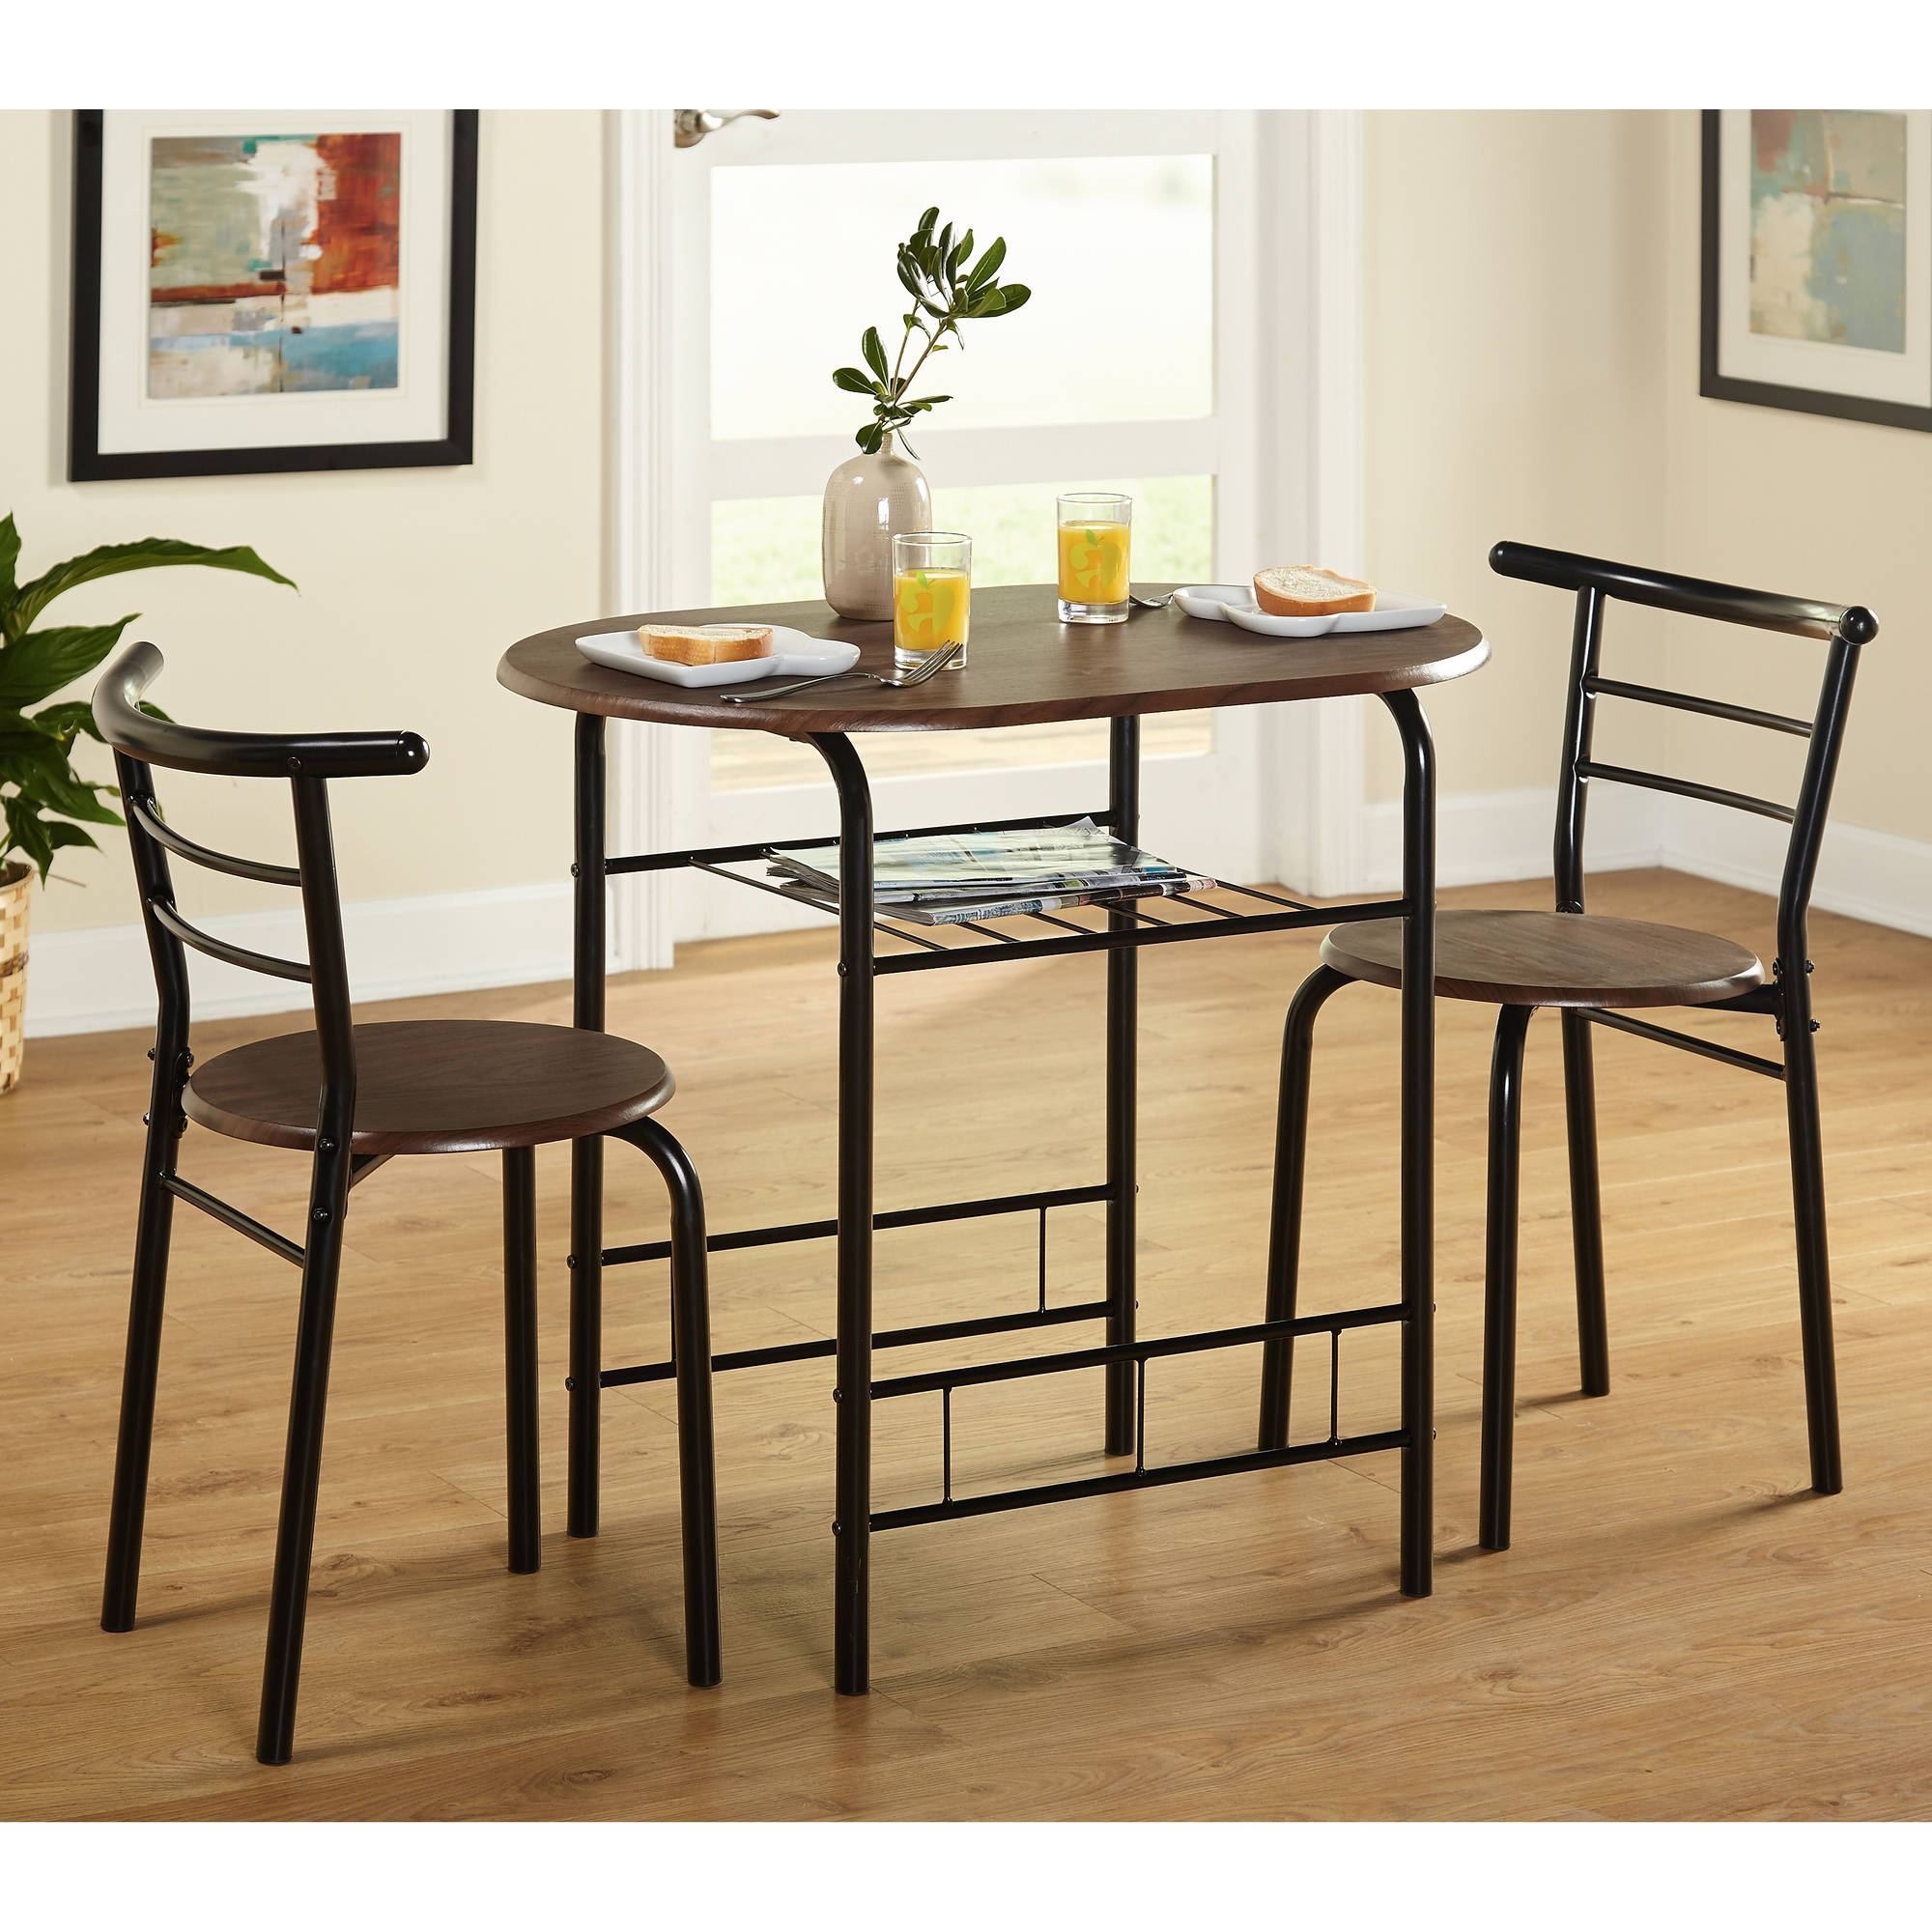 Small Bistro Table Set For Kitchen